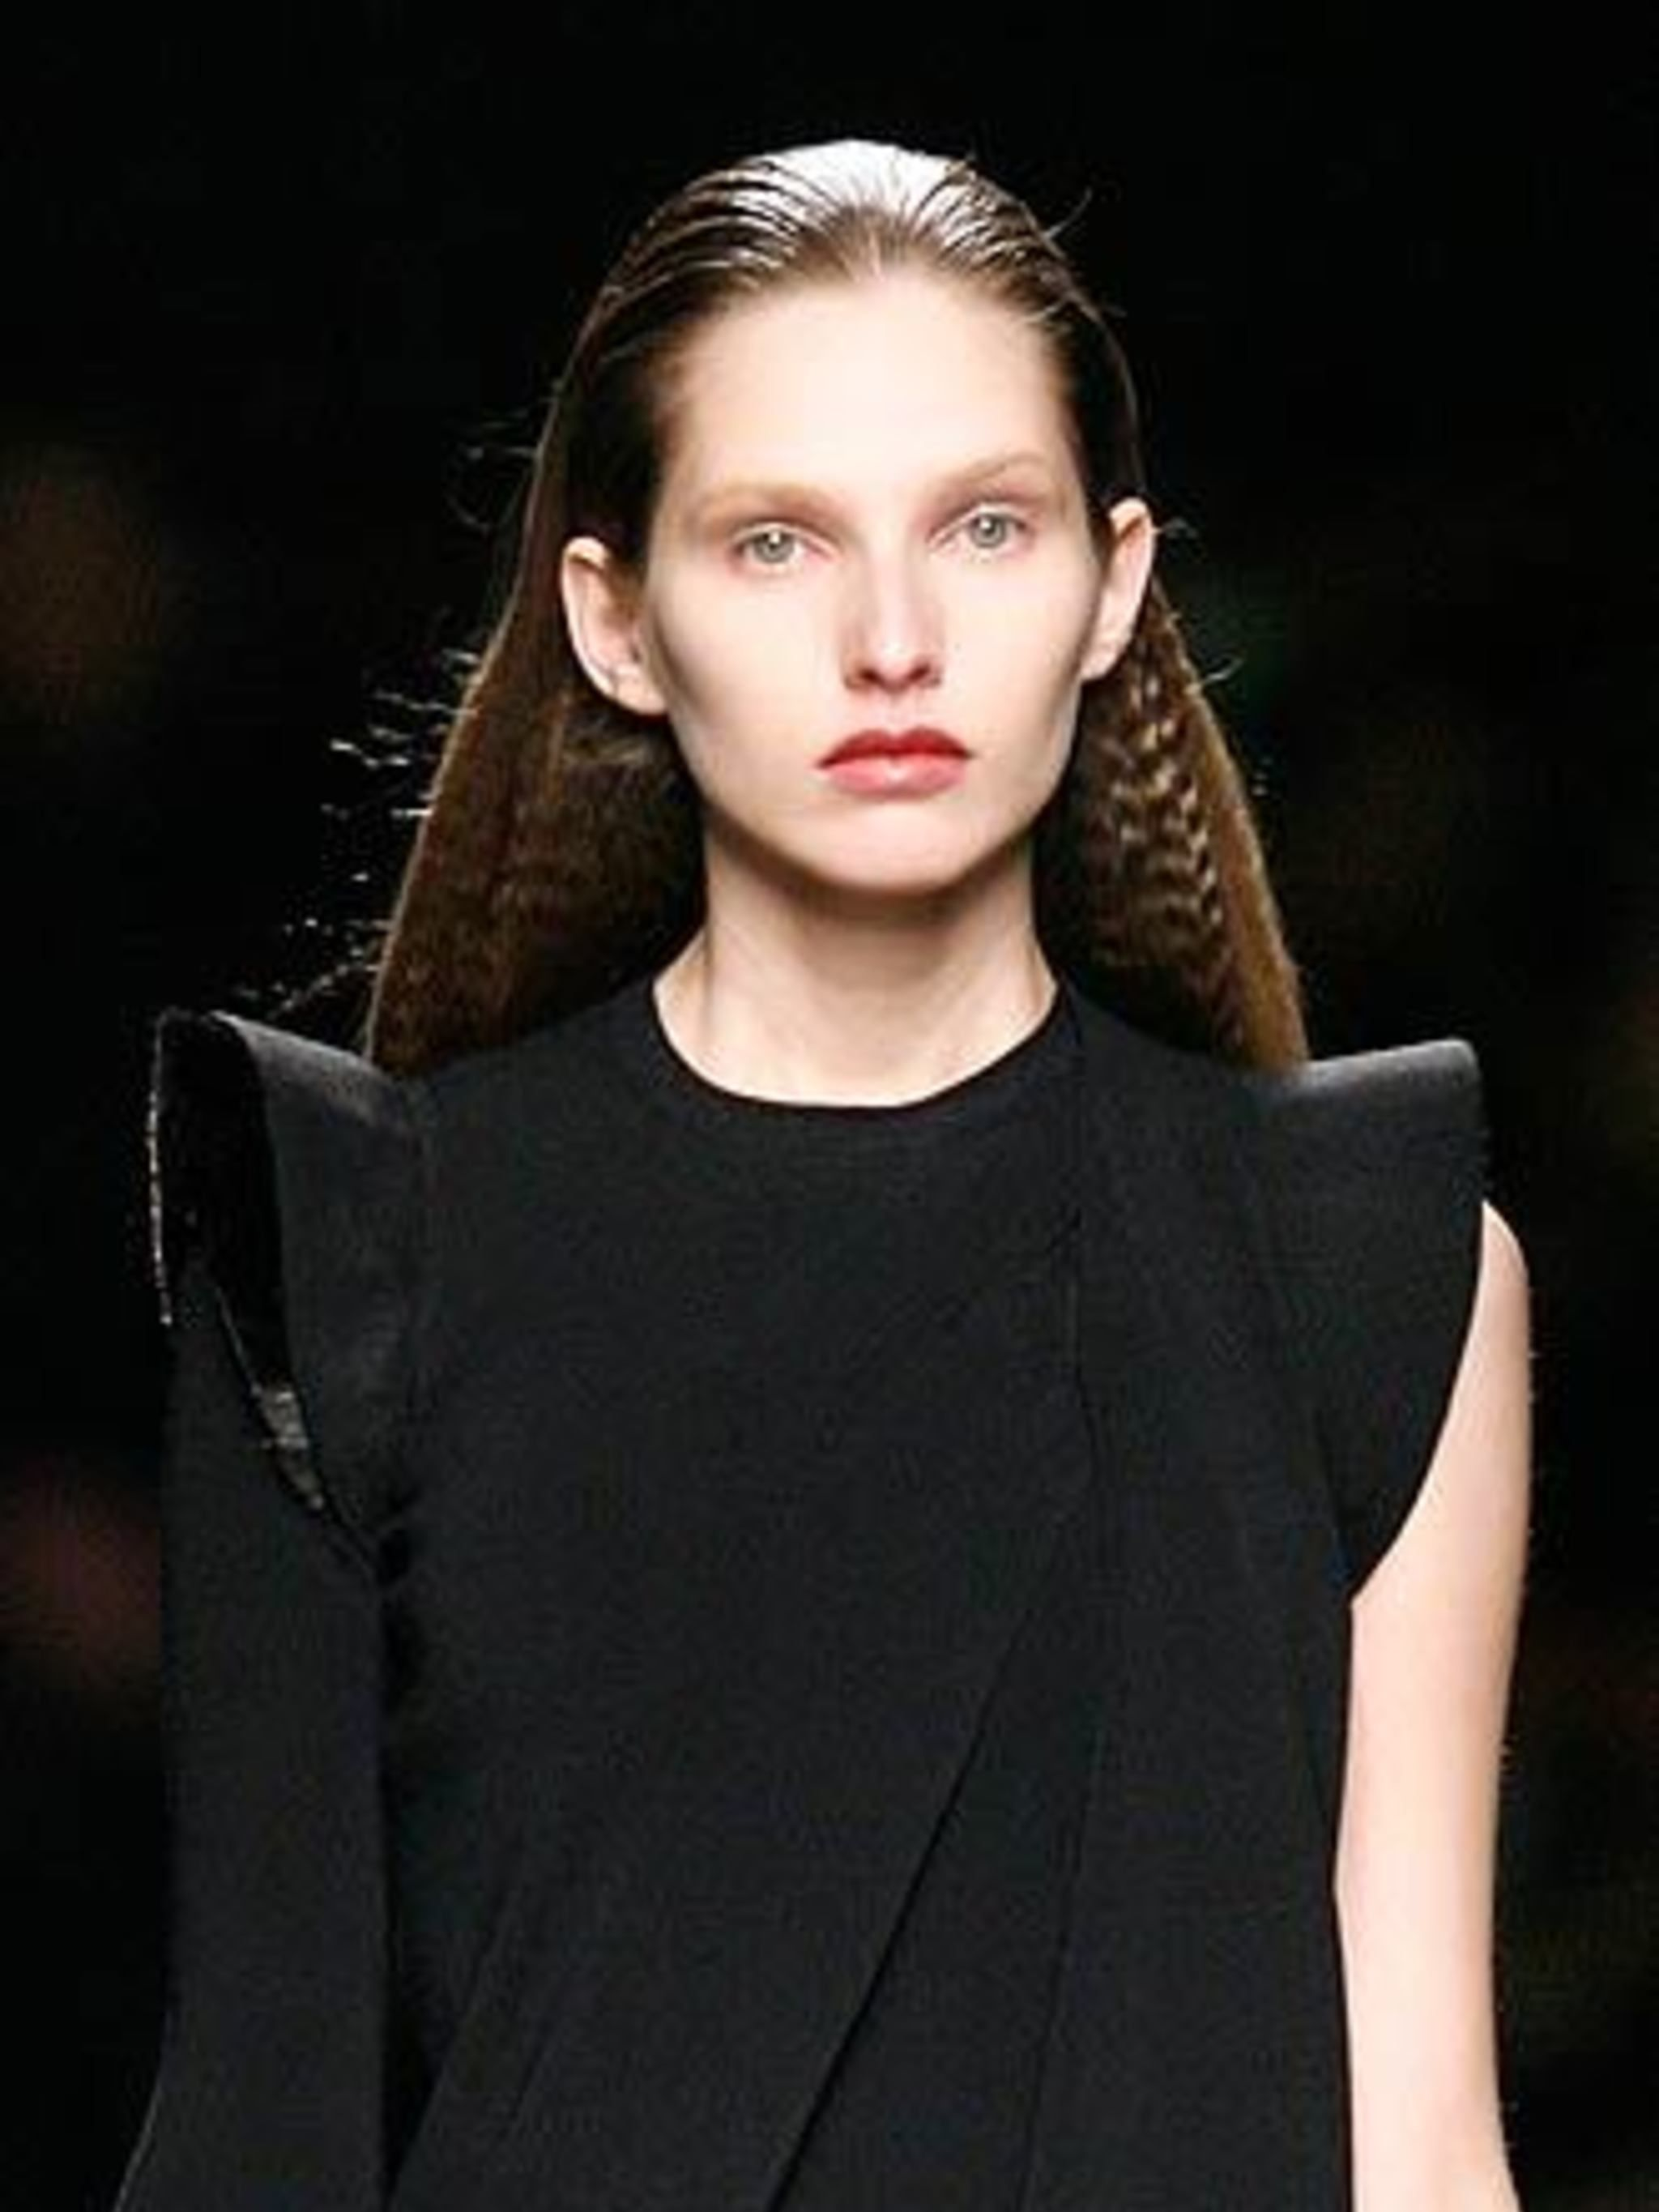 "<p>Statement hair If you didn't believe crimping was back last season, now is the time to take note as both <a href=""http://features.elleuk.com/fashion_week/112-5-Givenchy-autumn-winter-2009.html"">Givenchy</a> and <a href=""http://features.elleuk.com/fashi"